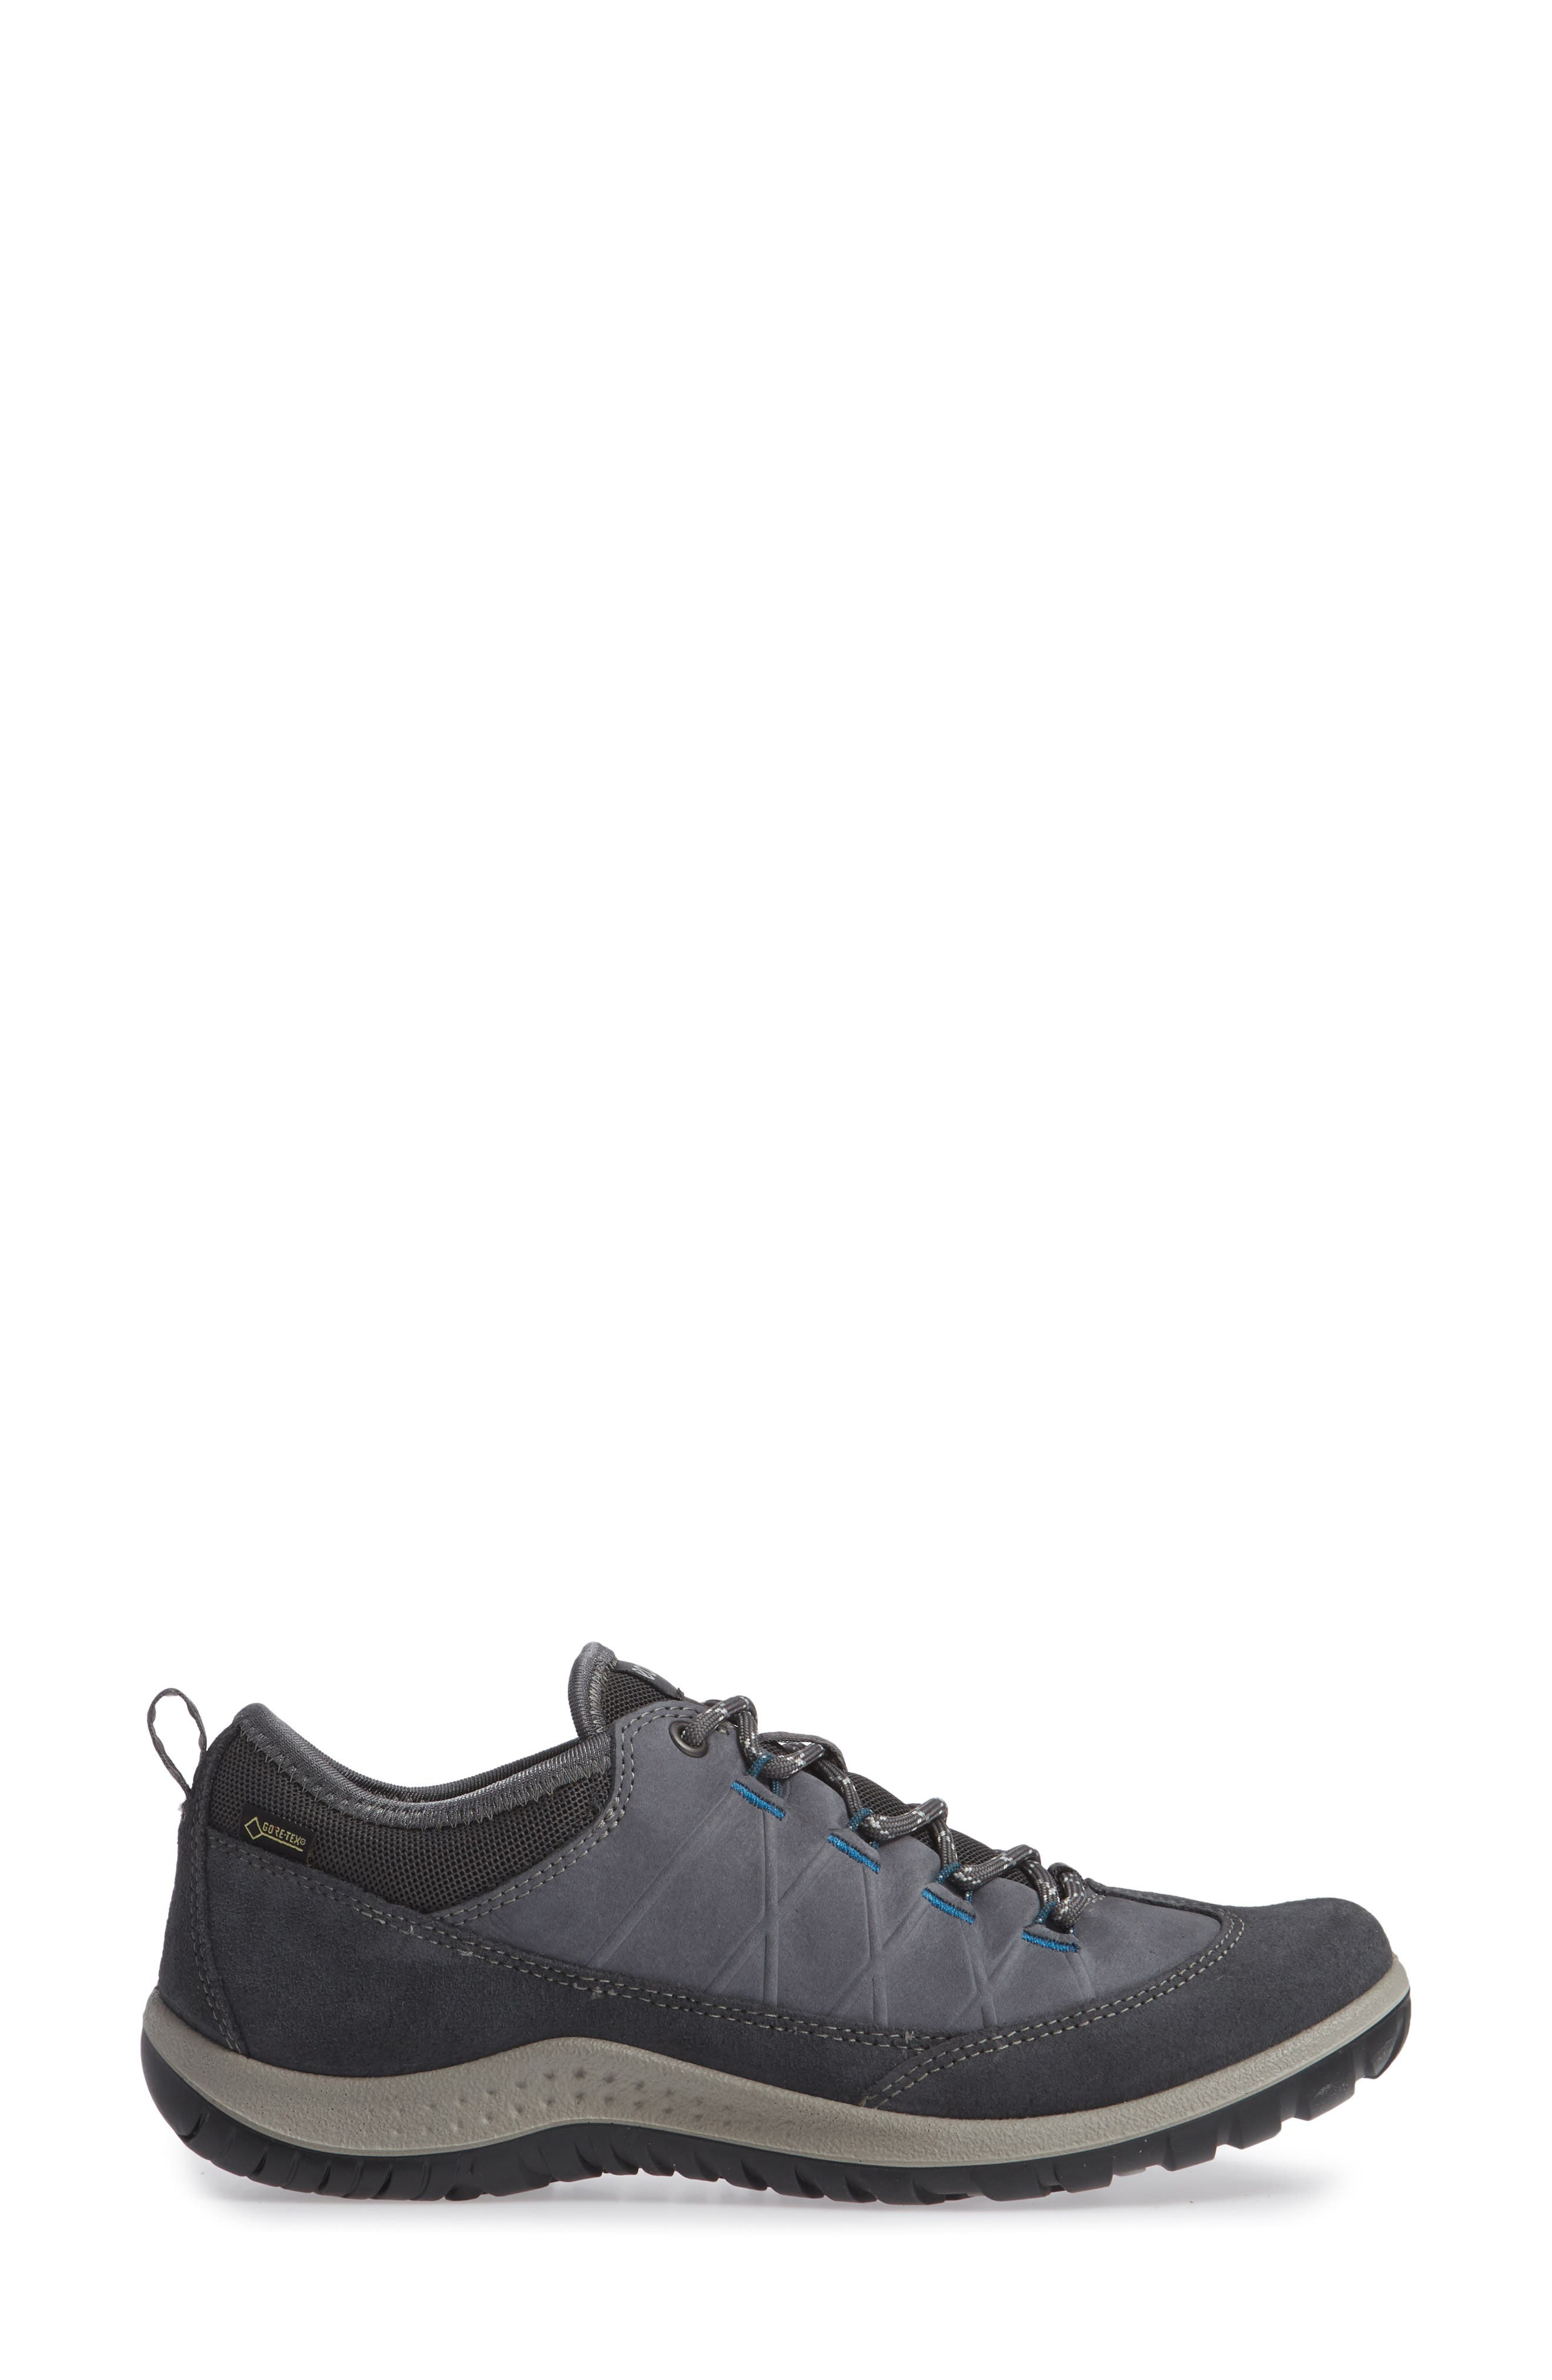 'Aspina GTX' Waterproof Sneaker,                             Alternate thumbnail 3, color,                             Magnet Nubuck Leather